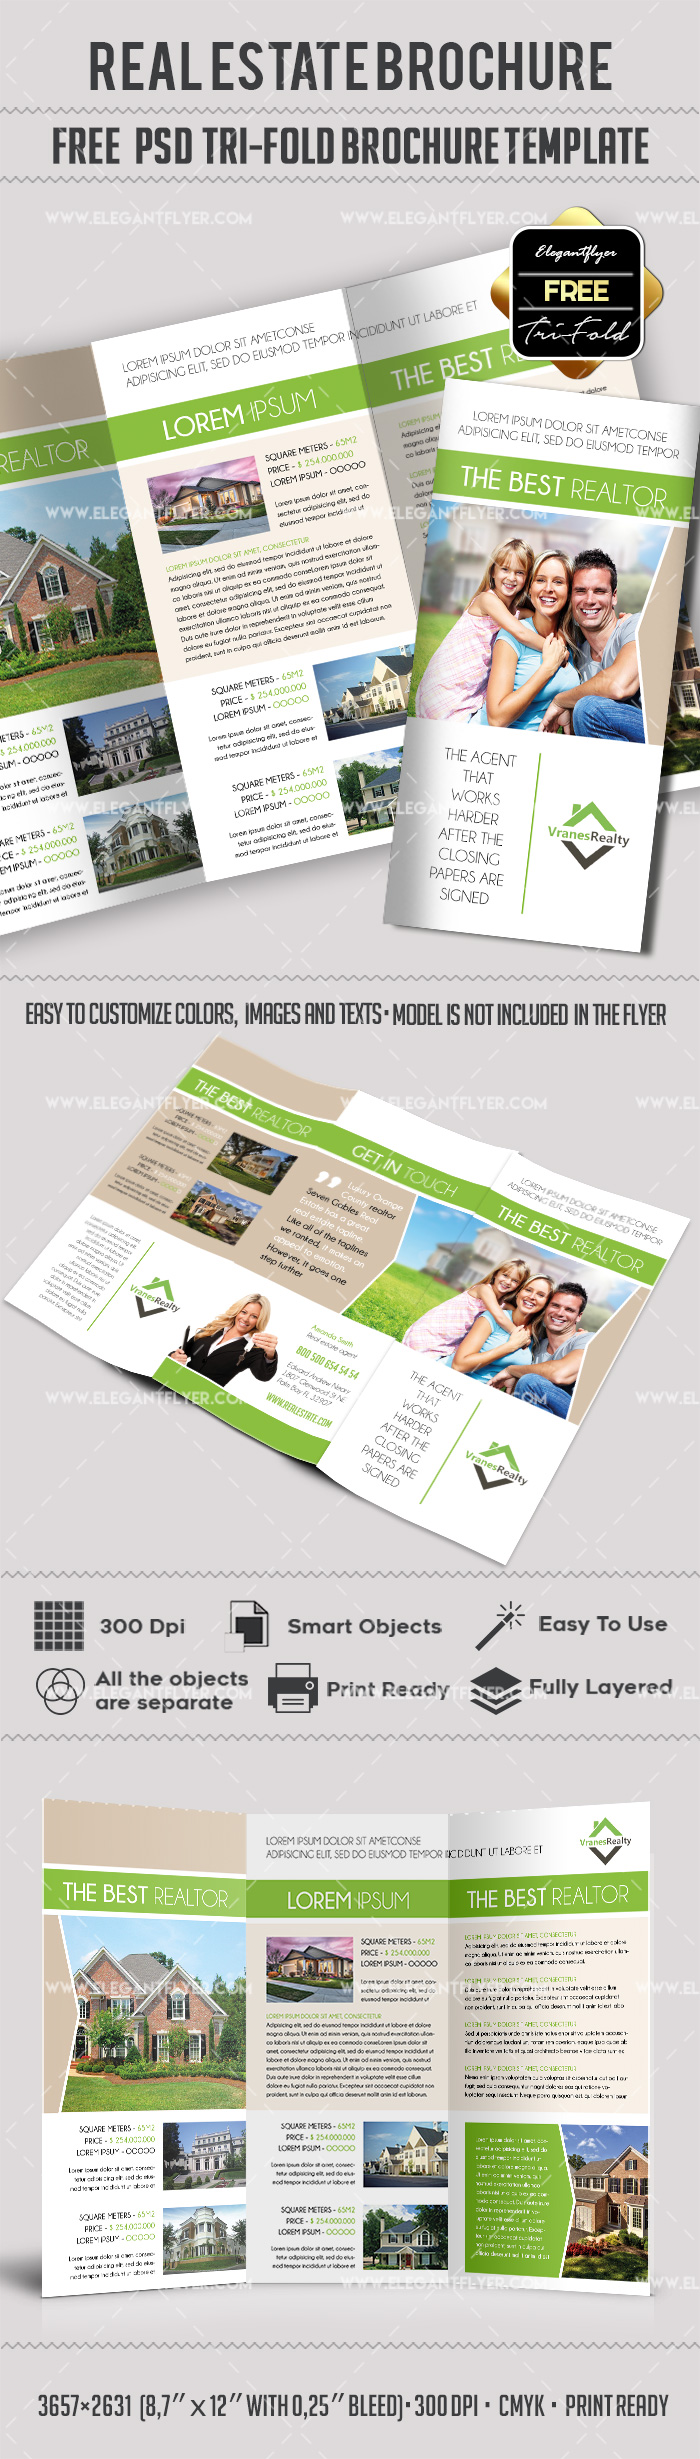 free psd brochure template - free real estate trifold brochure template in psd by